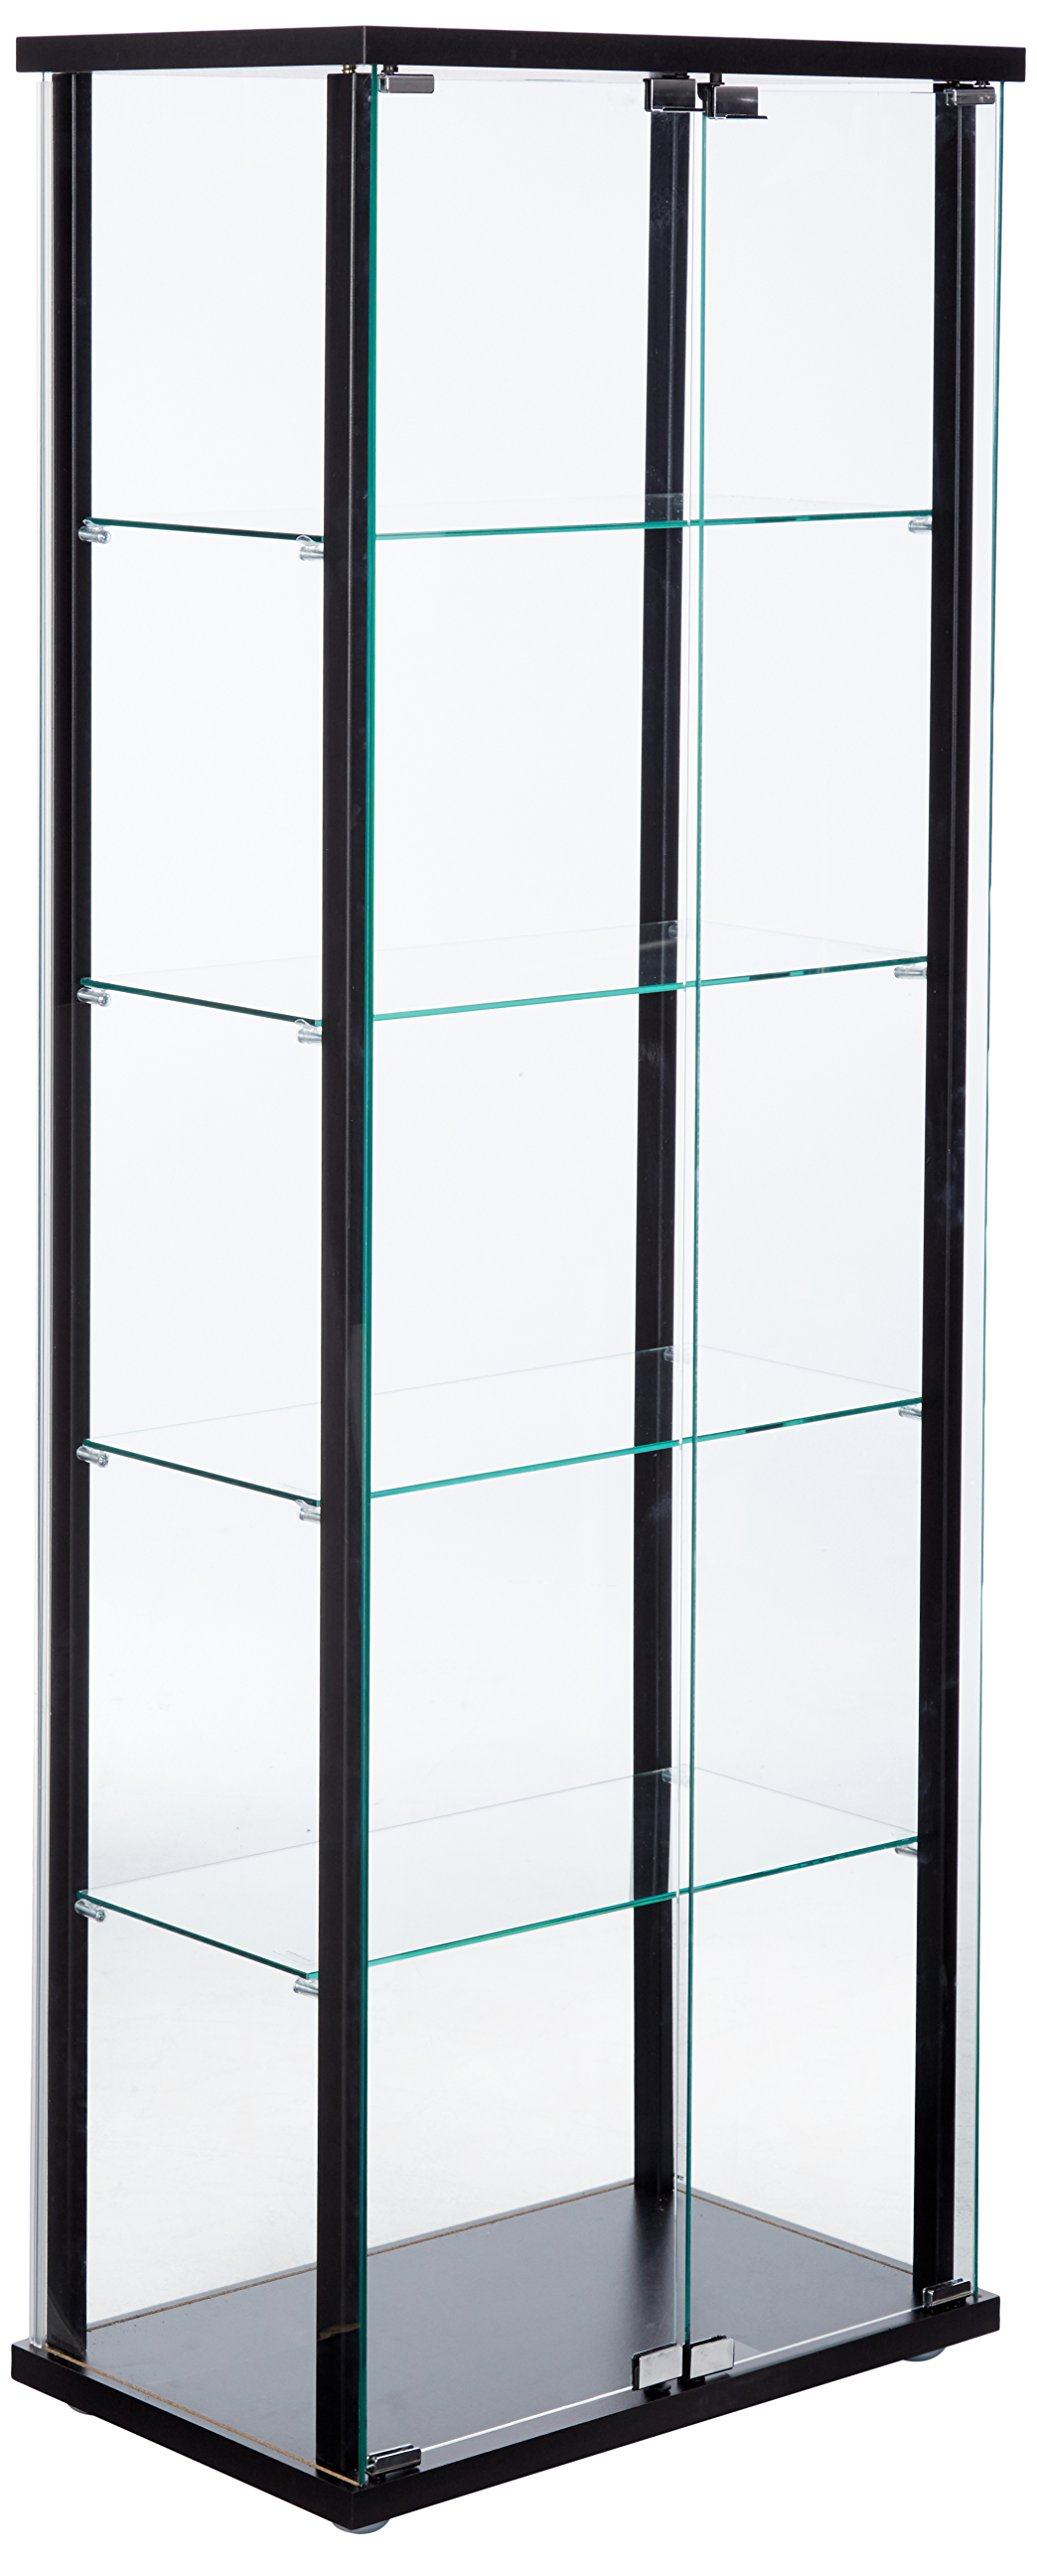 5-Shelf Glass Curio Cabinet Black and Clear by Coaster Home Furnishings